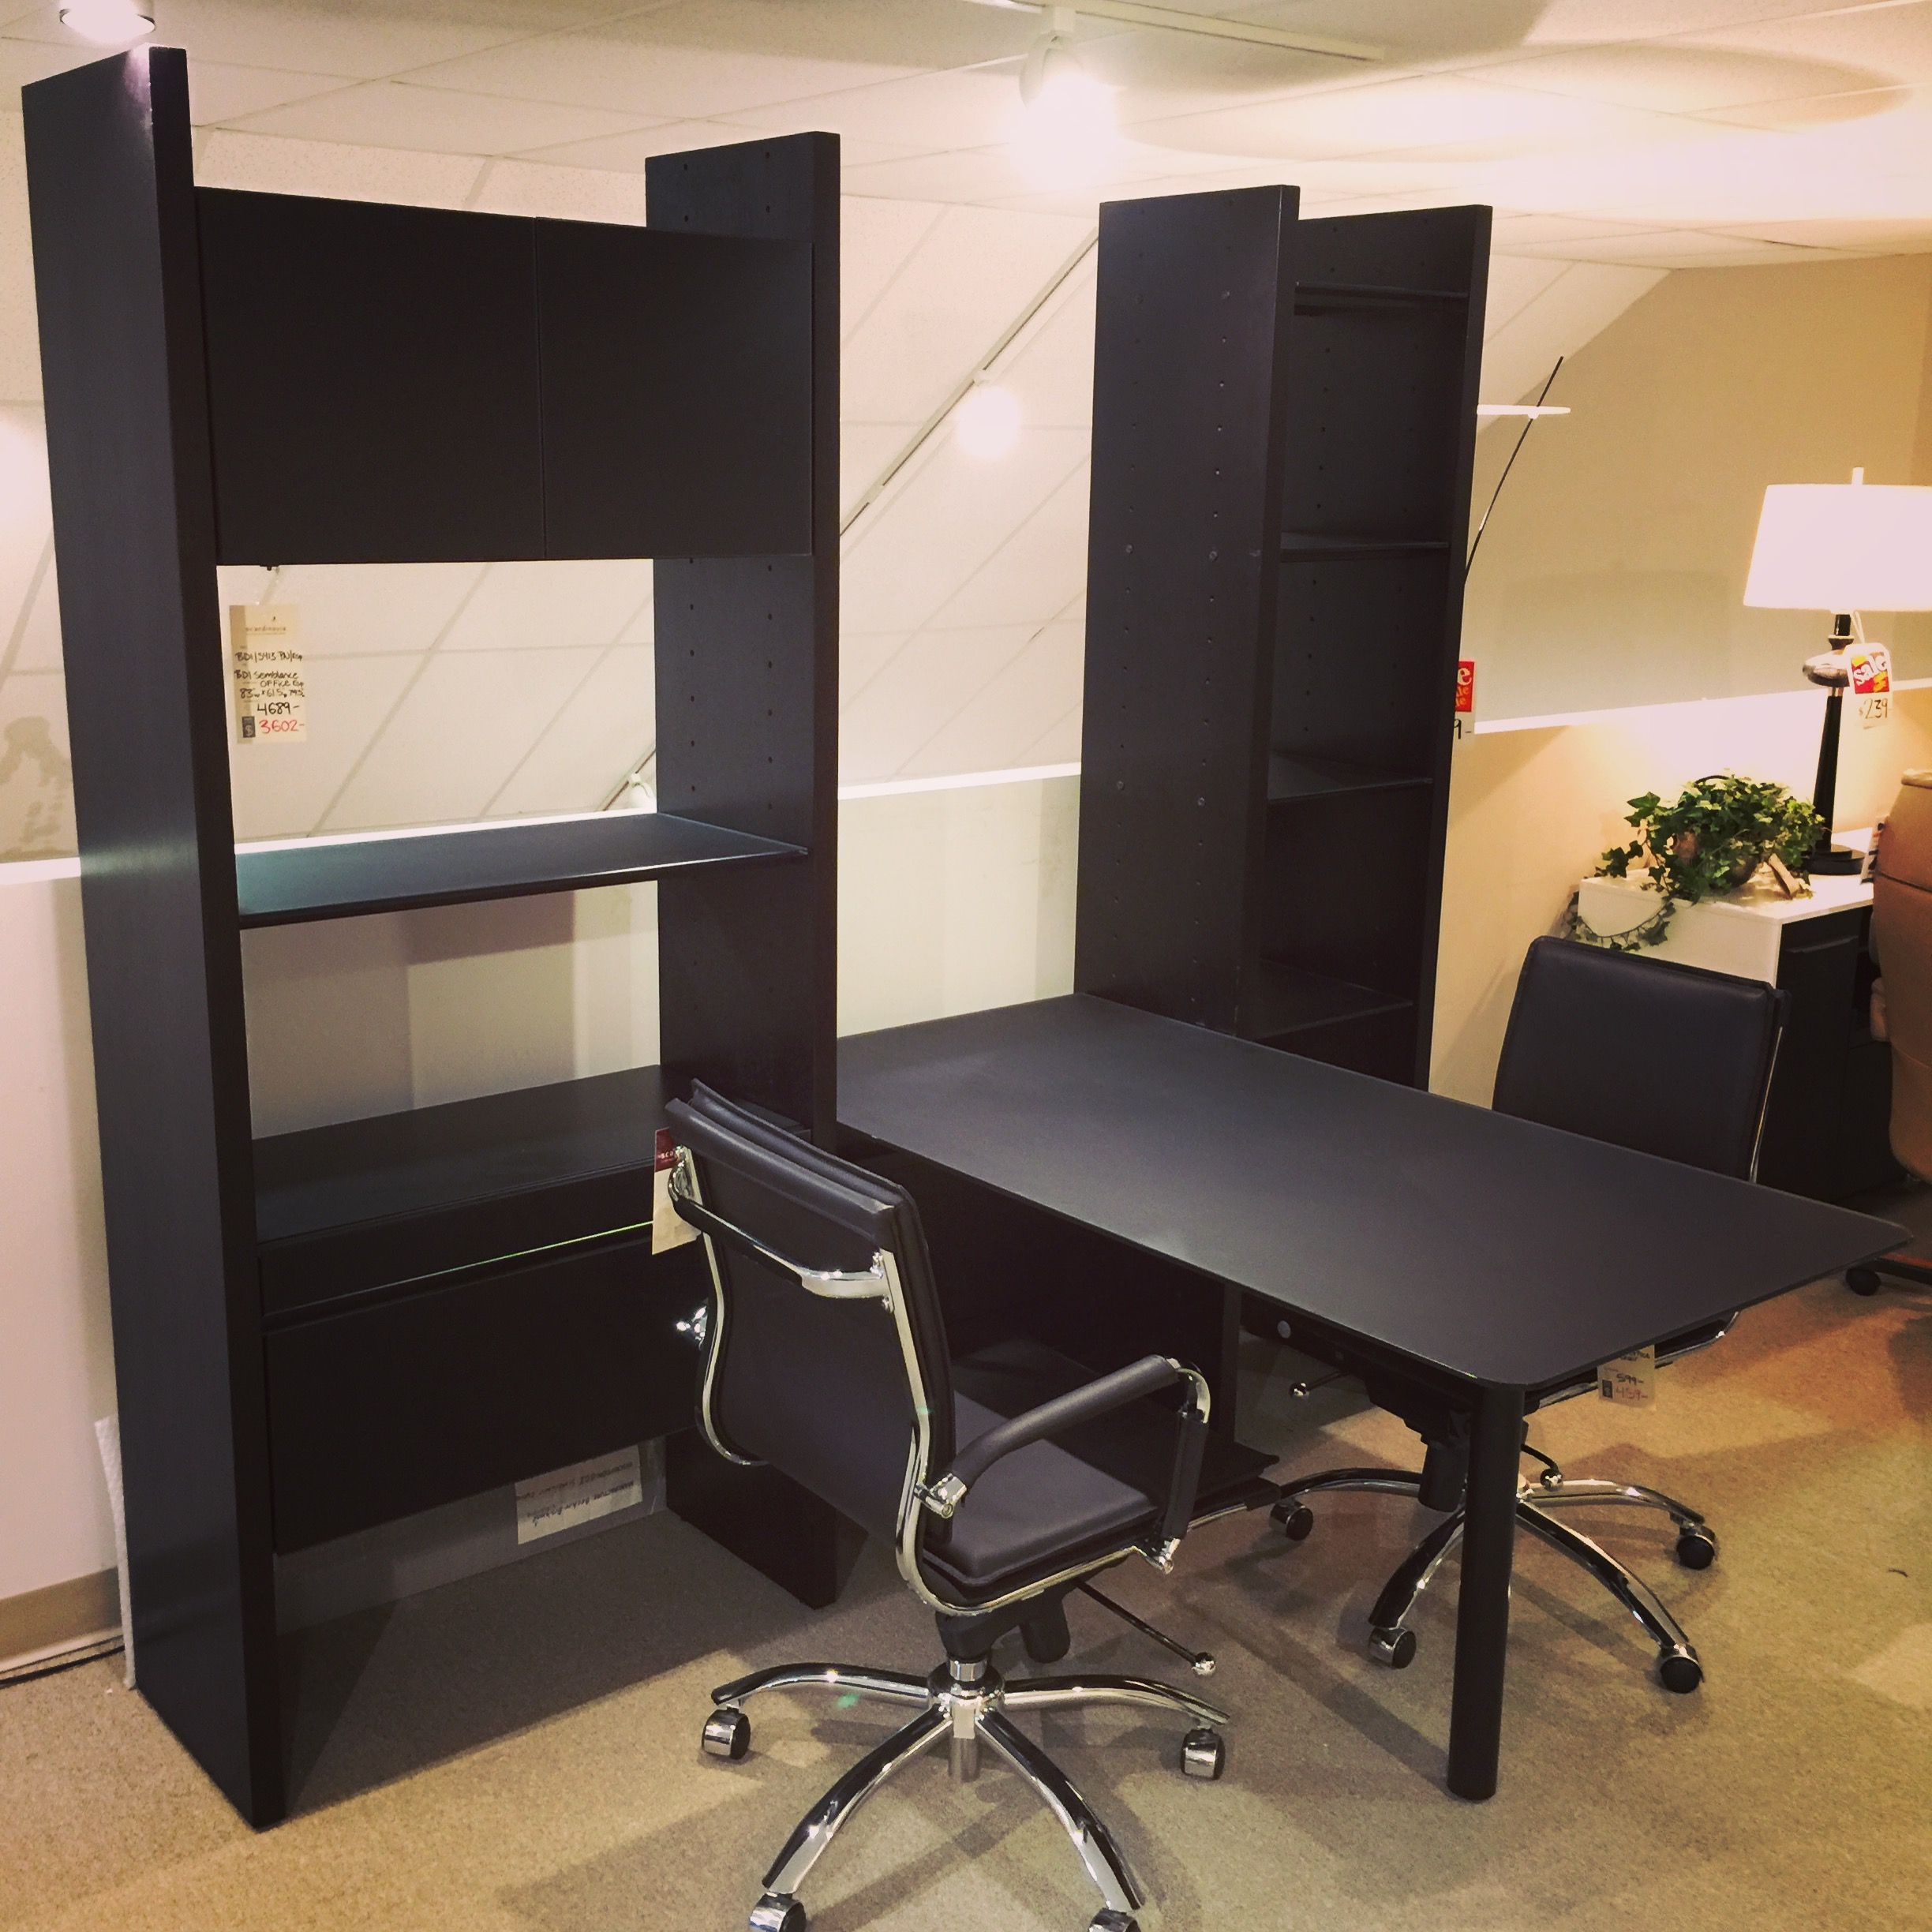 BDI Semblance office system Scandinavia inc. contemporary modern furniture  New Orleans Louisiana Metairie